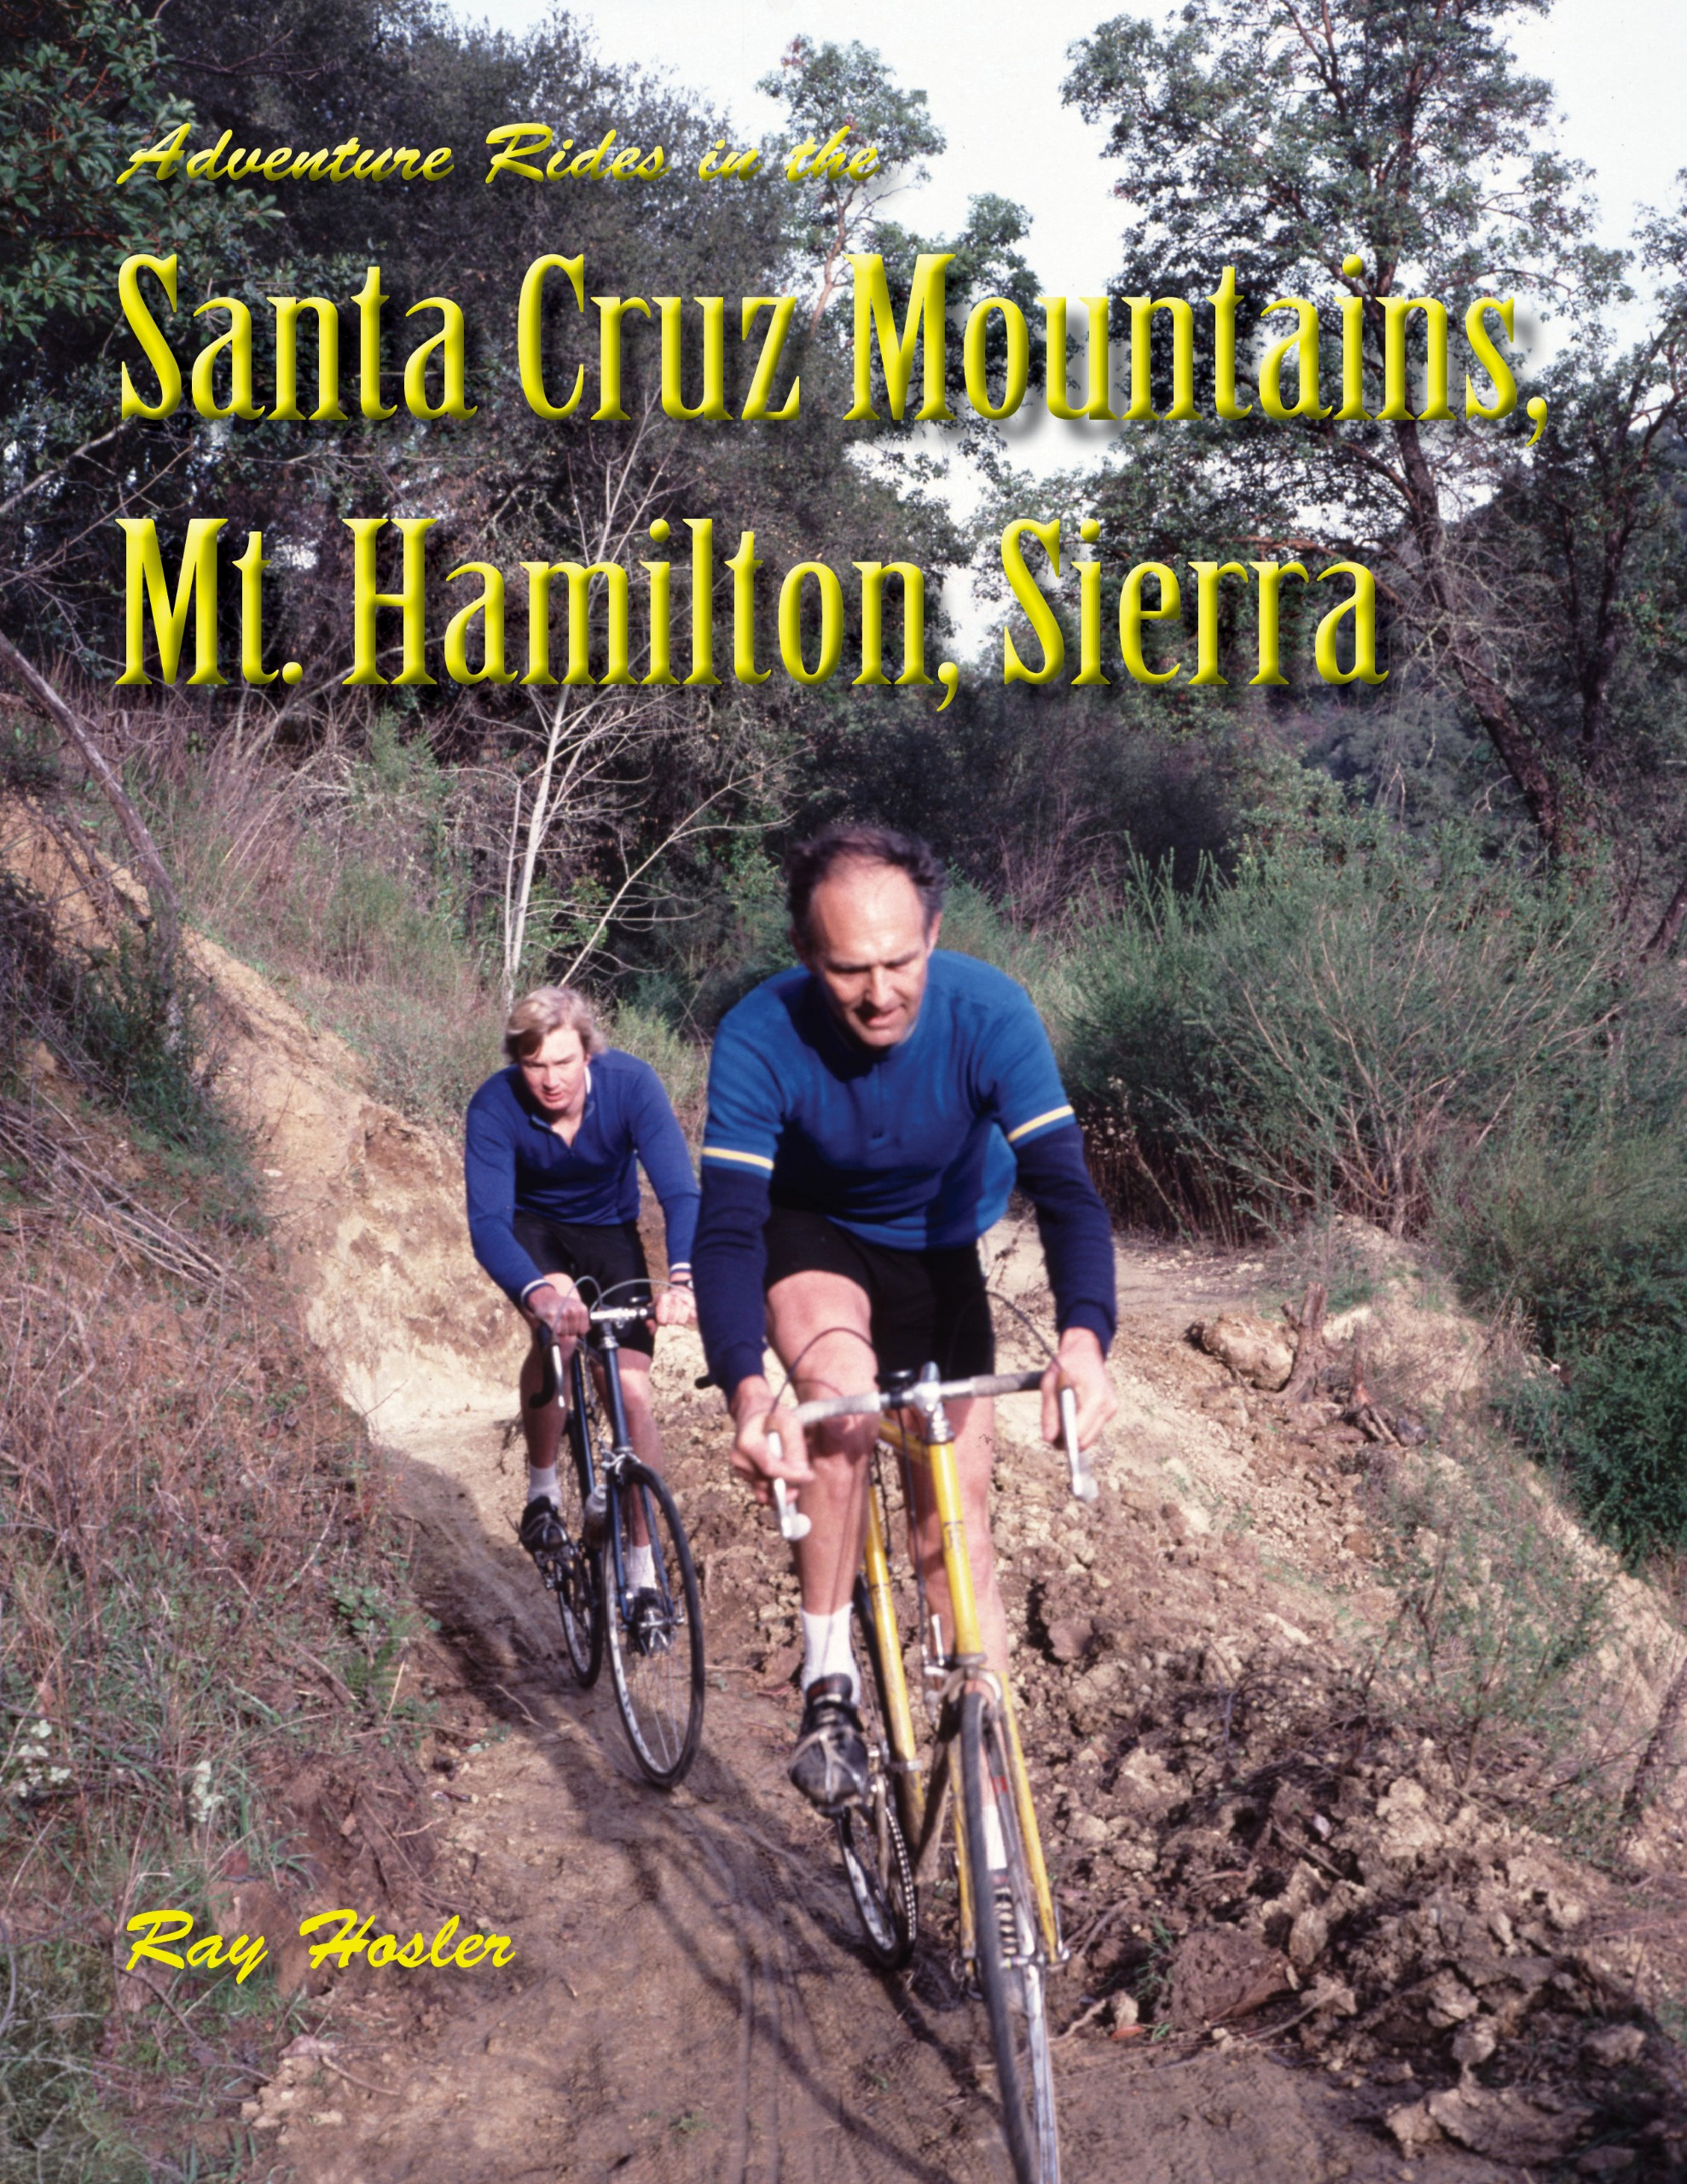 Adventure Rides in the Santa Cruz Mountains, Mt. Hamilton, Sierra